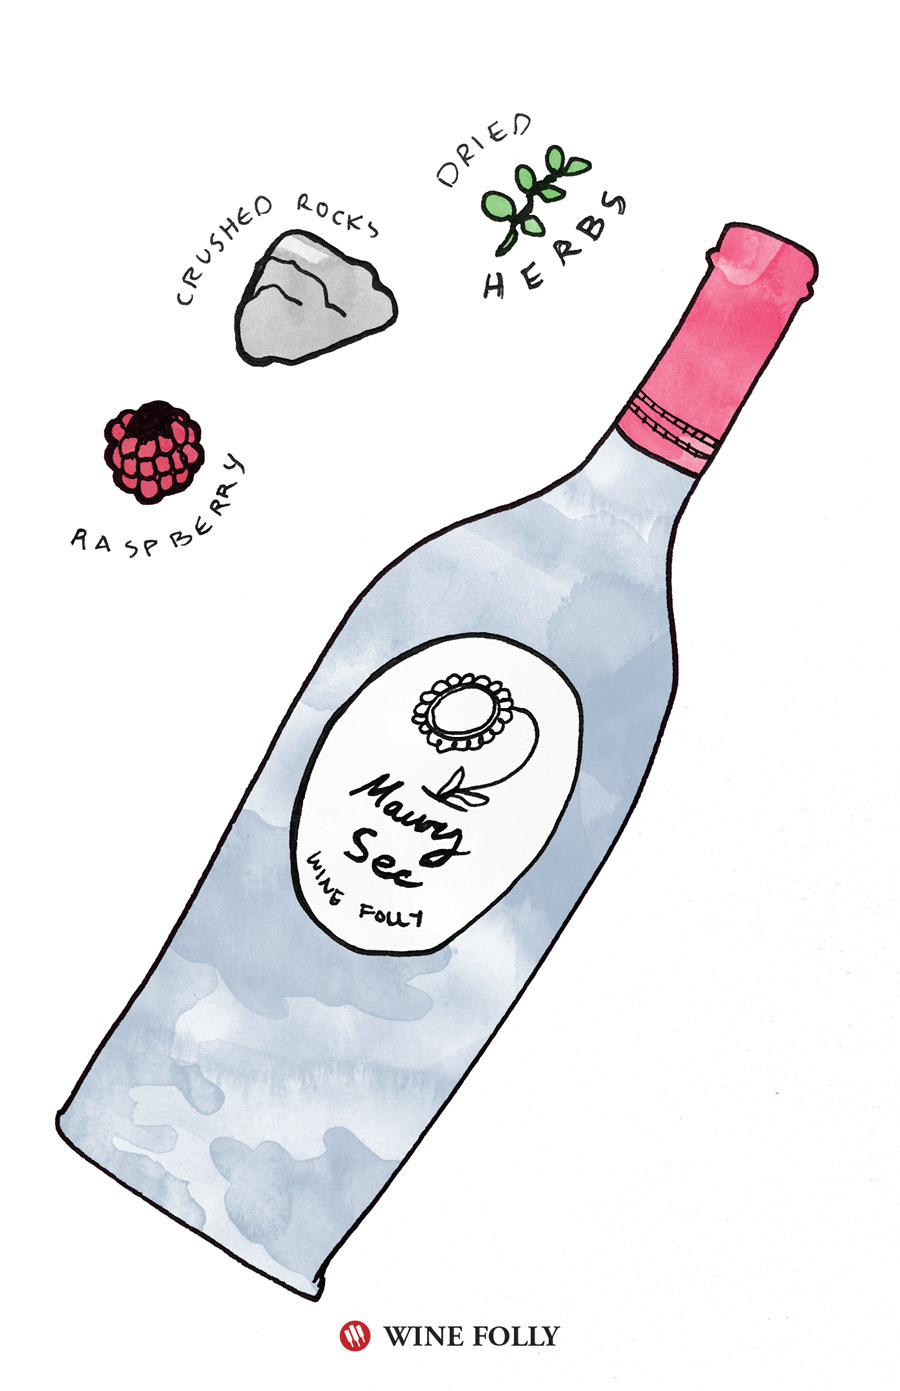 Maury Sec Illustration by Wine Folly